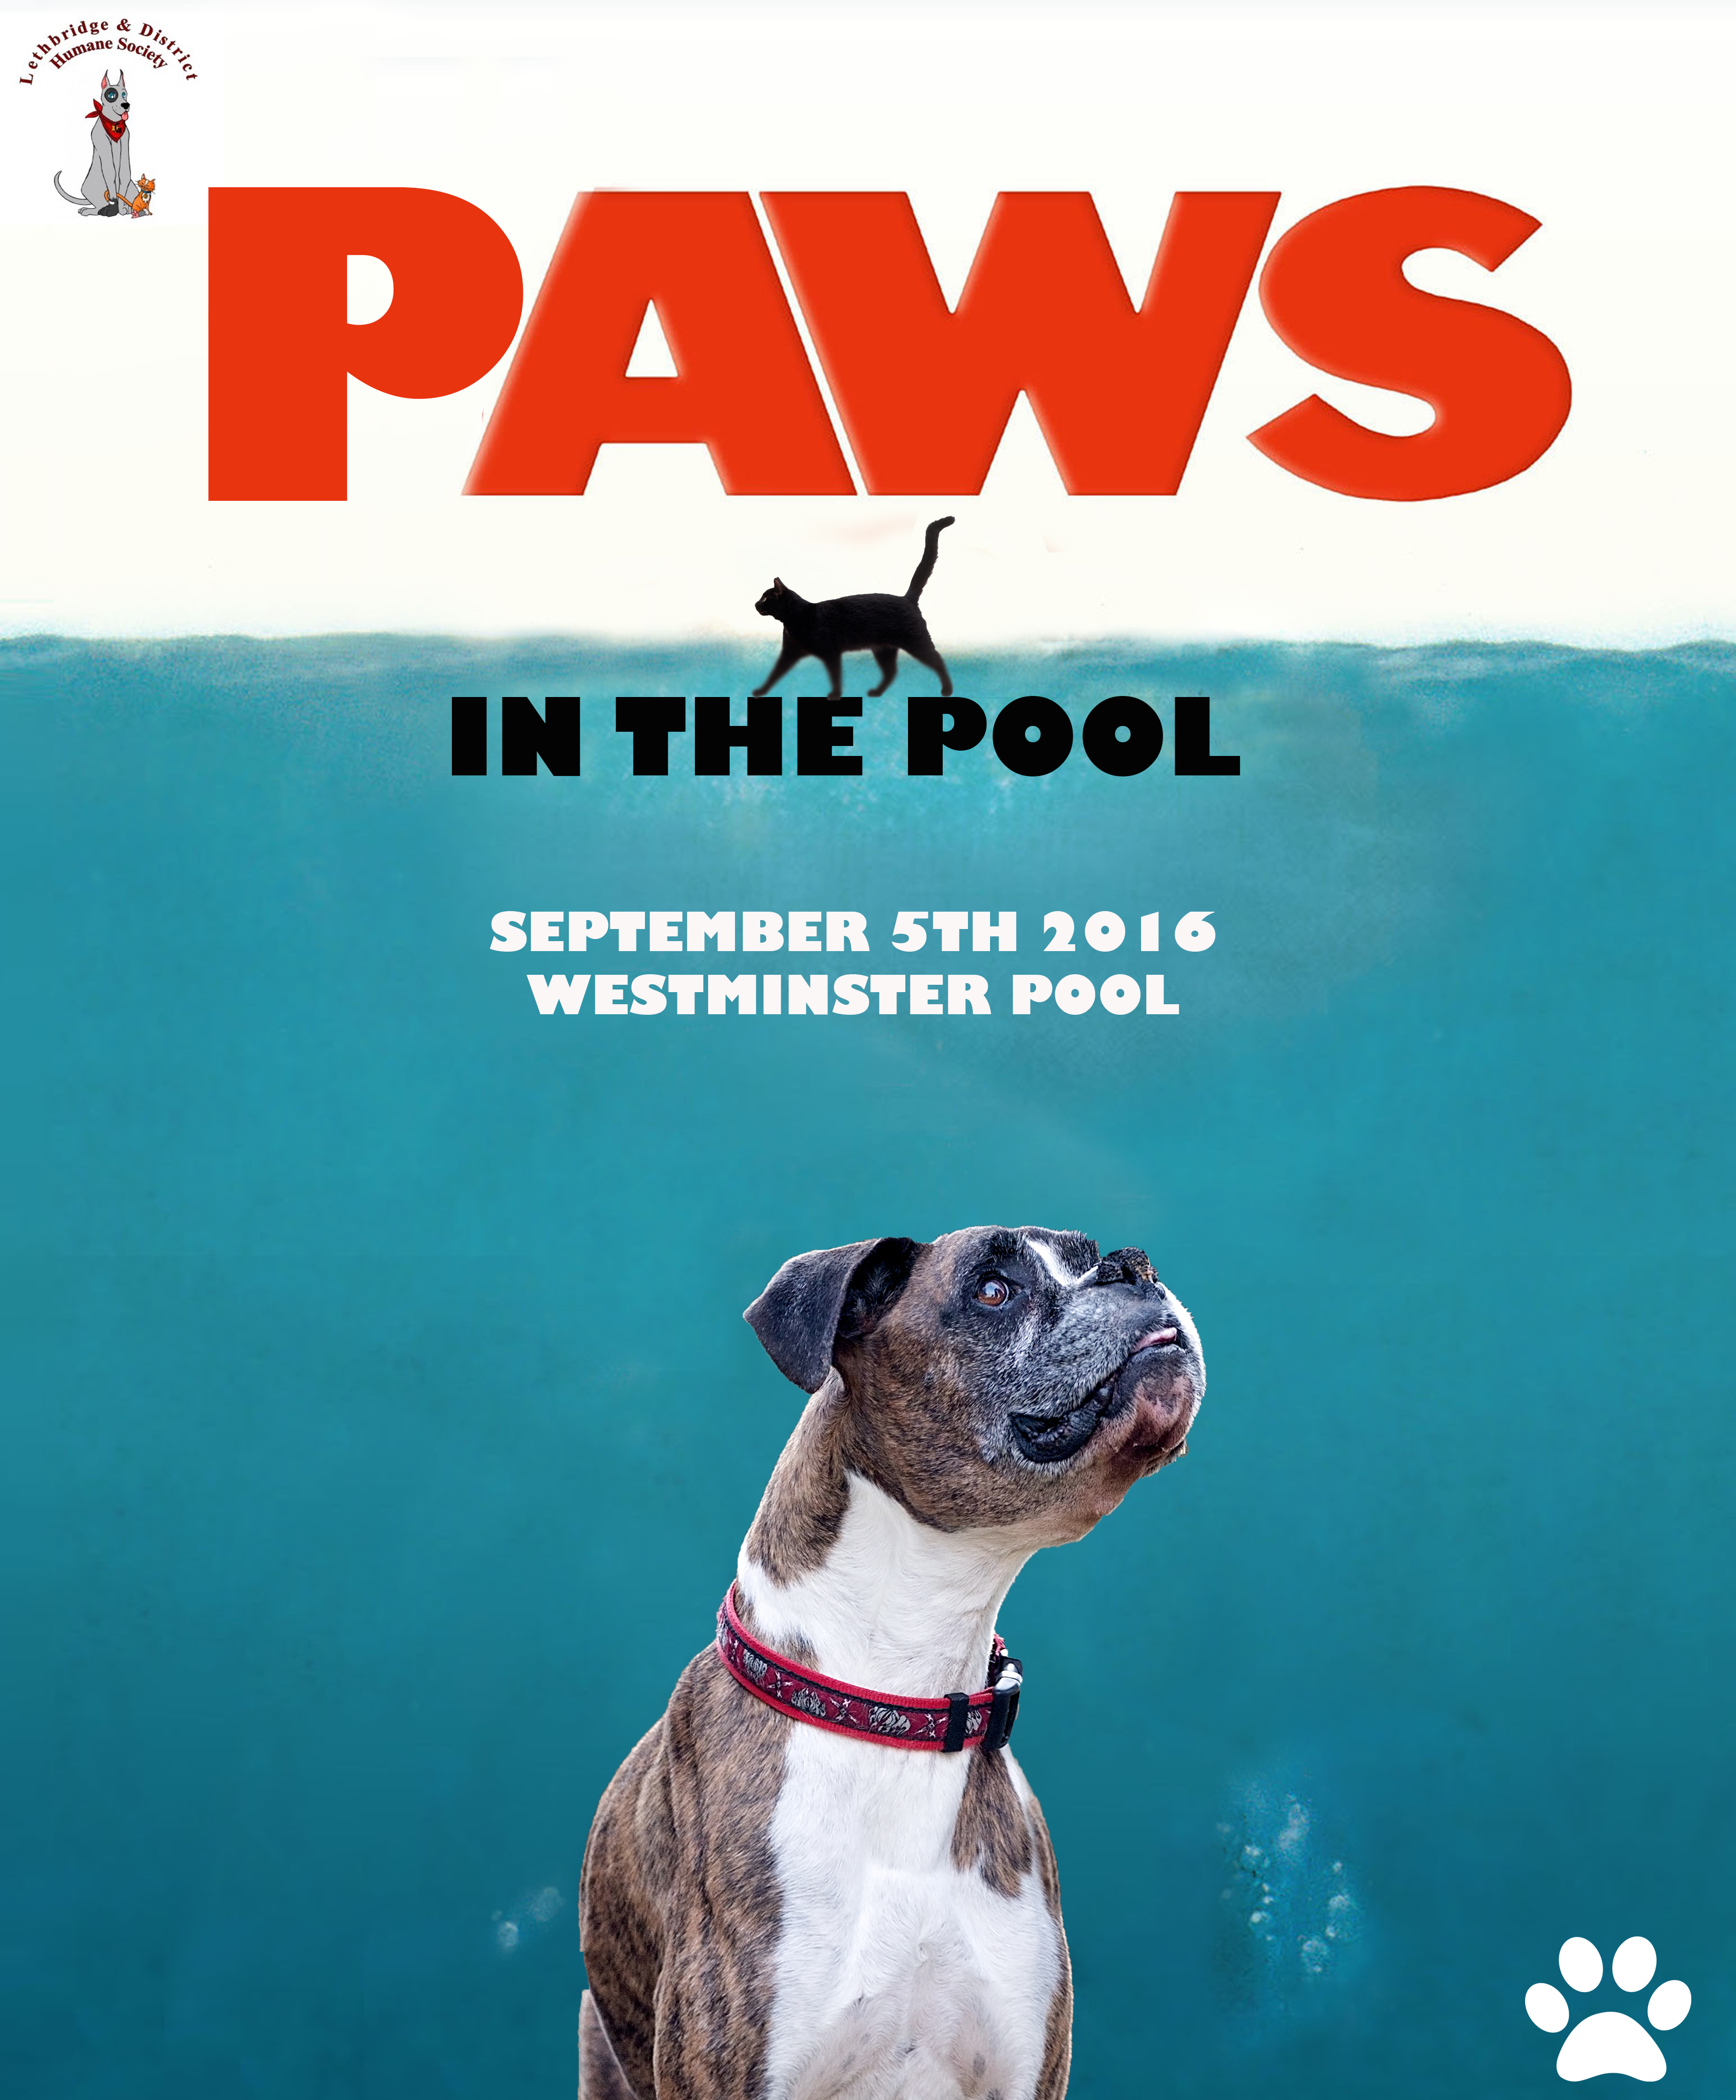 Jaws Paws in The Pool